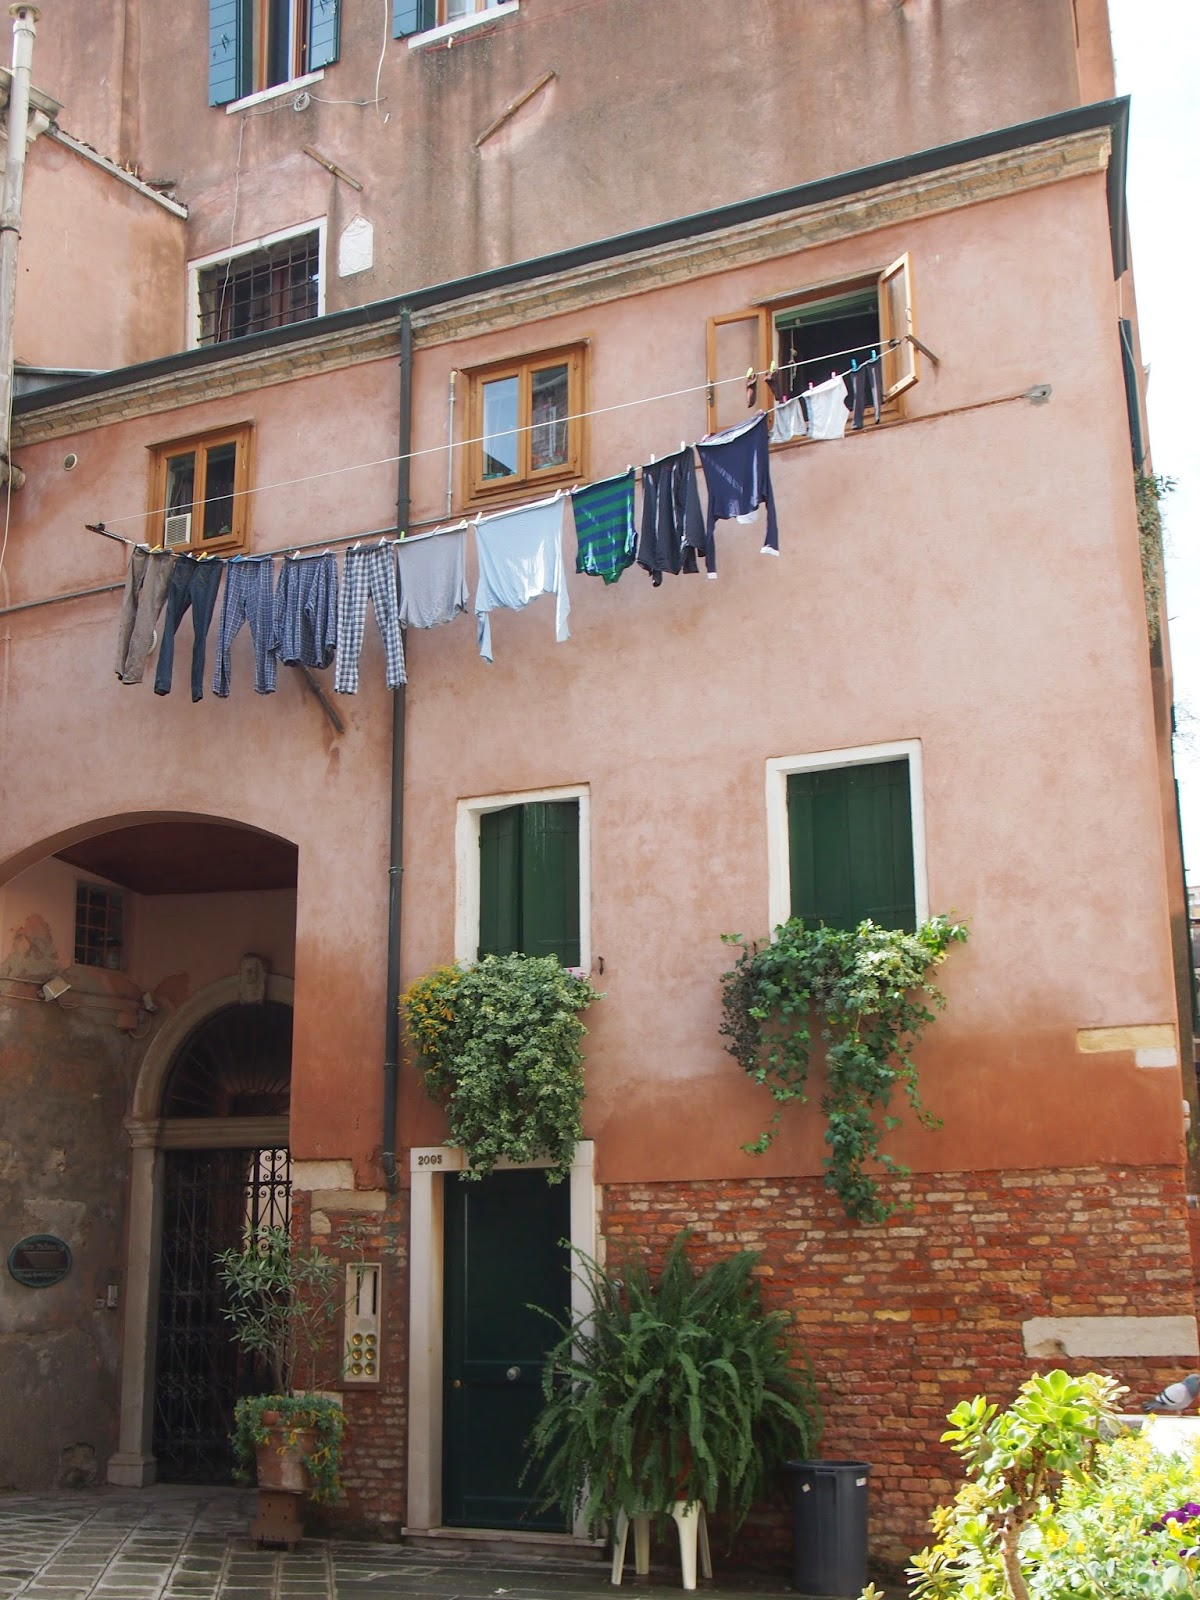 Laundry drying in Venice